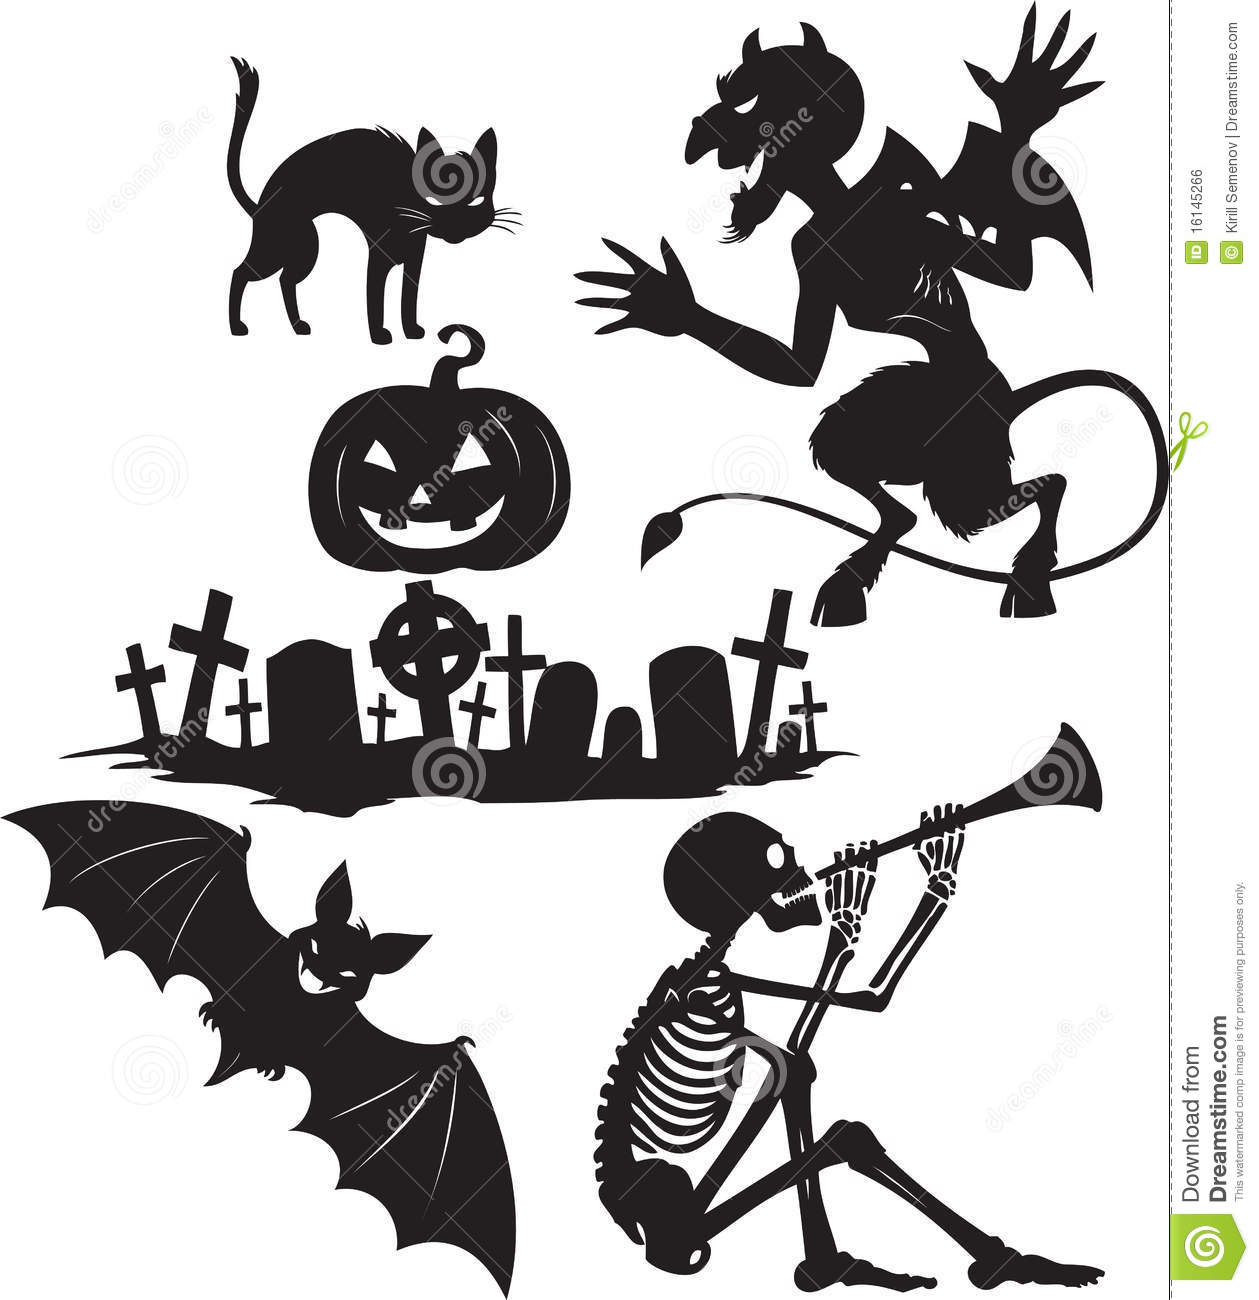 Halloween Shapes Royalty Free Stock Image Image 16145266